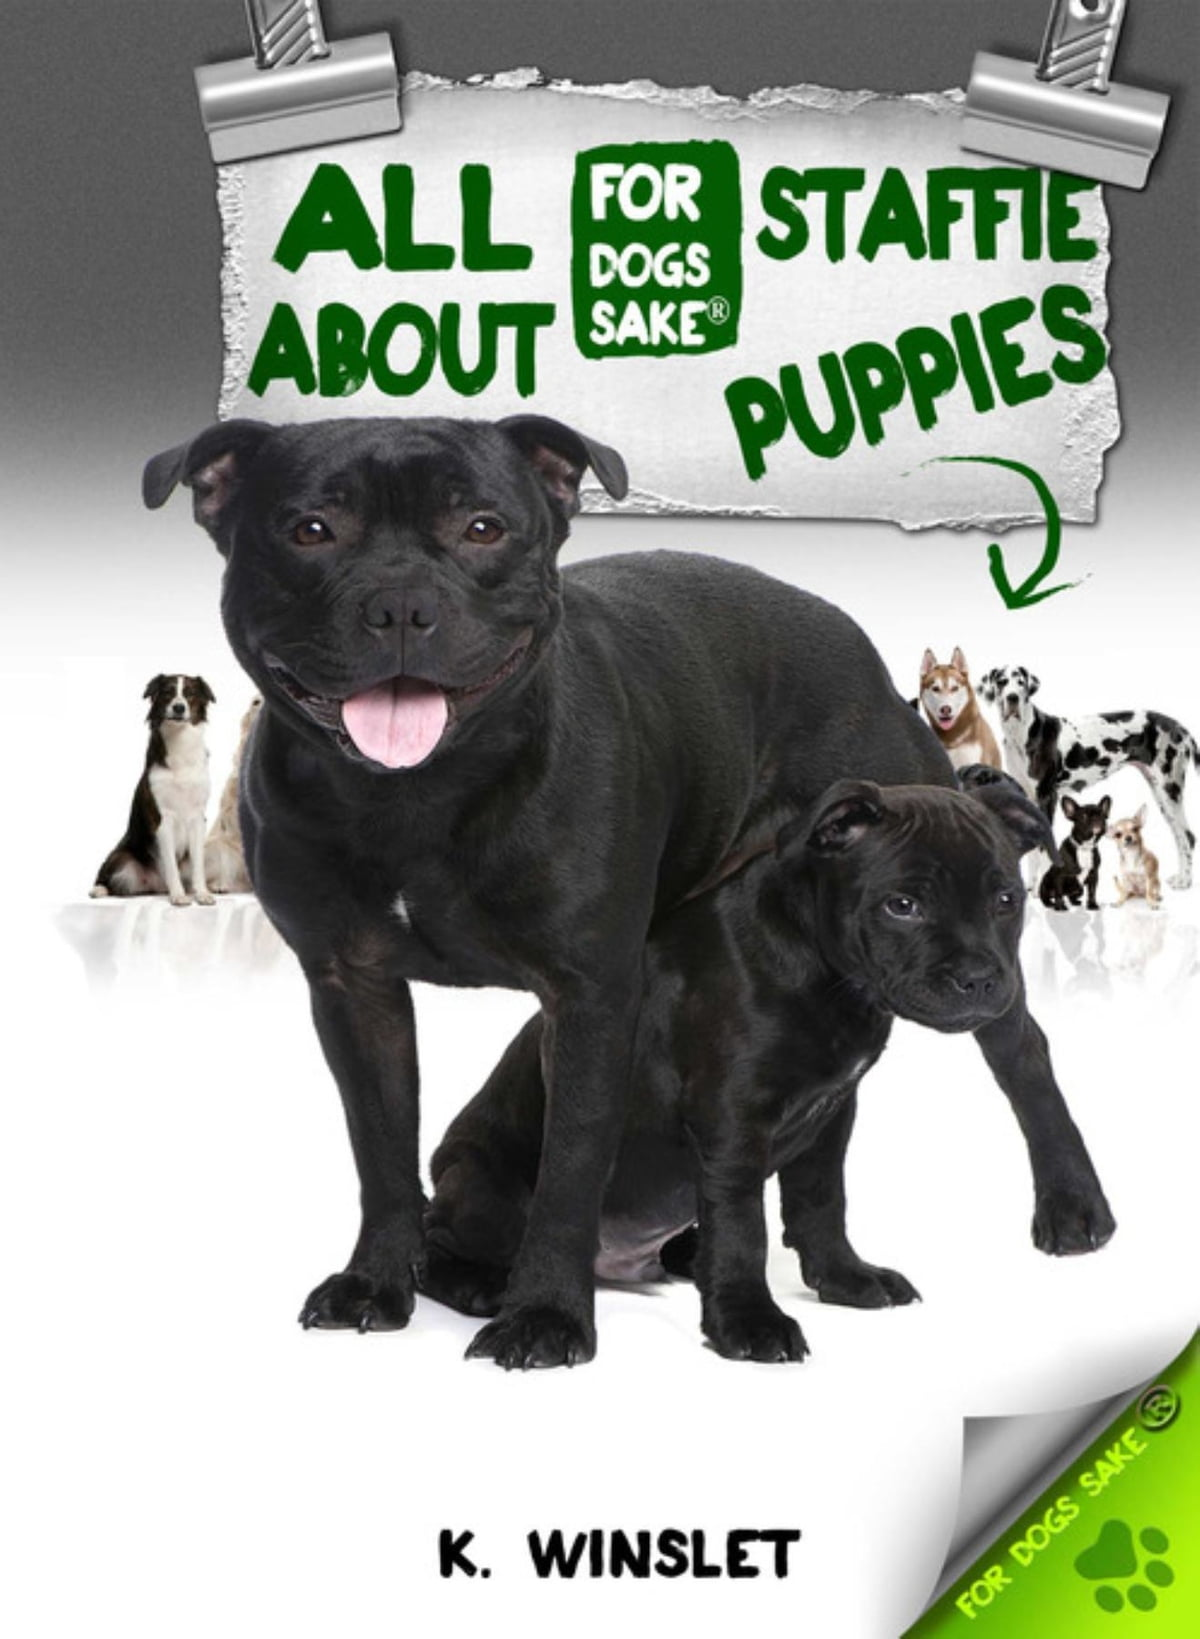 All About Staffordshire Bull Terrier Puppies Ebook By Kevin Winslet Rakuten Kobo